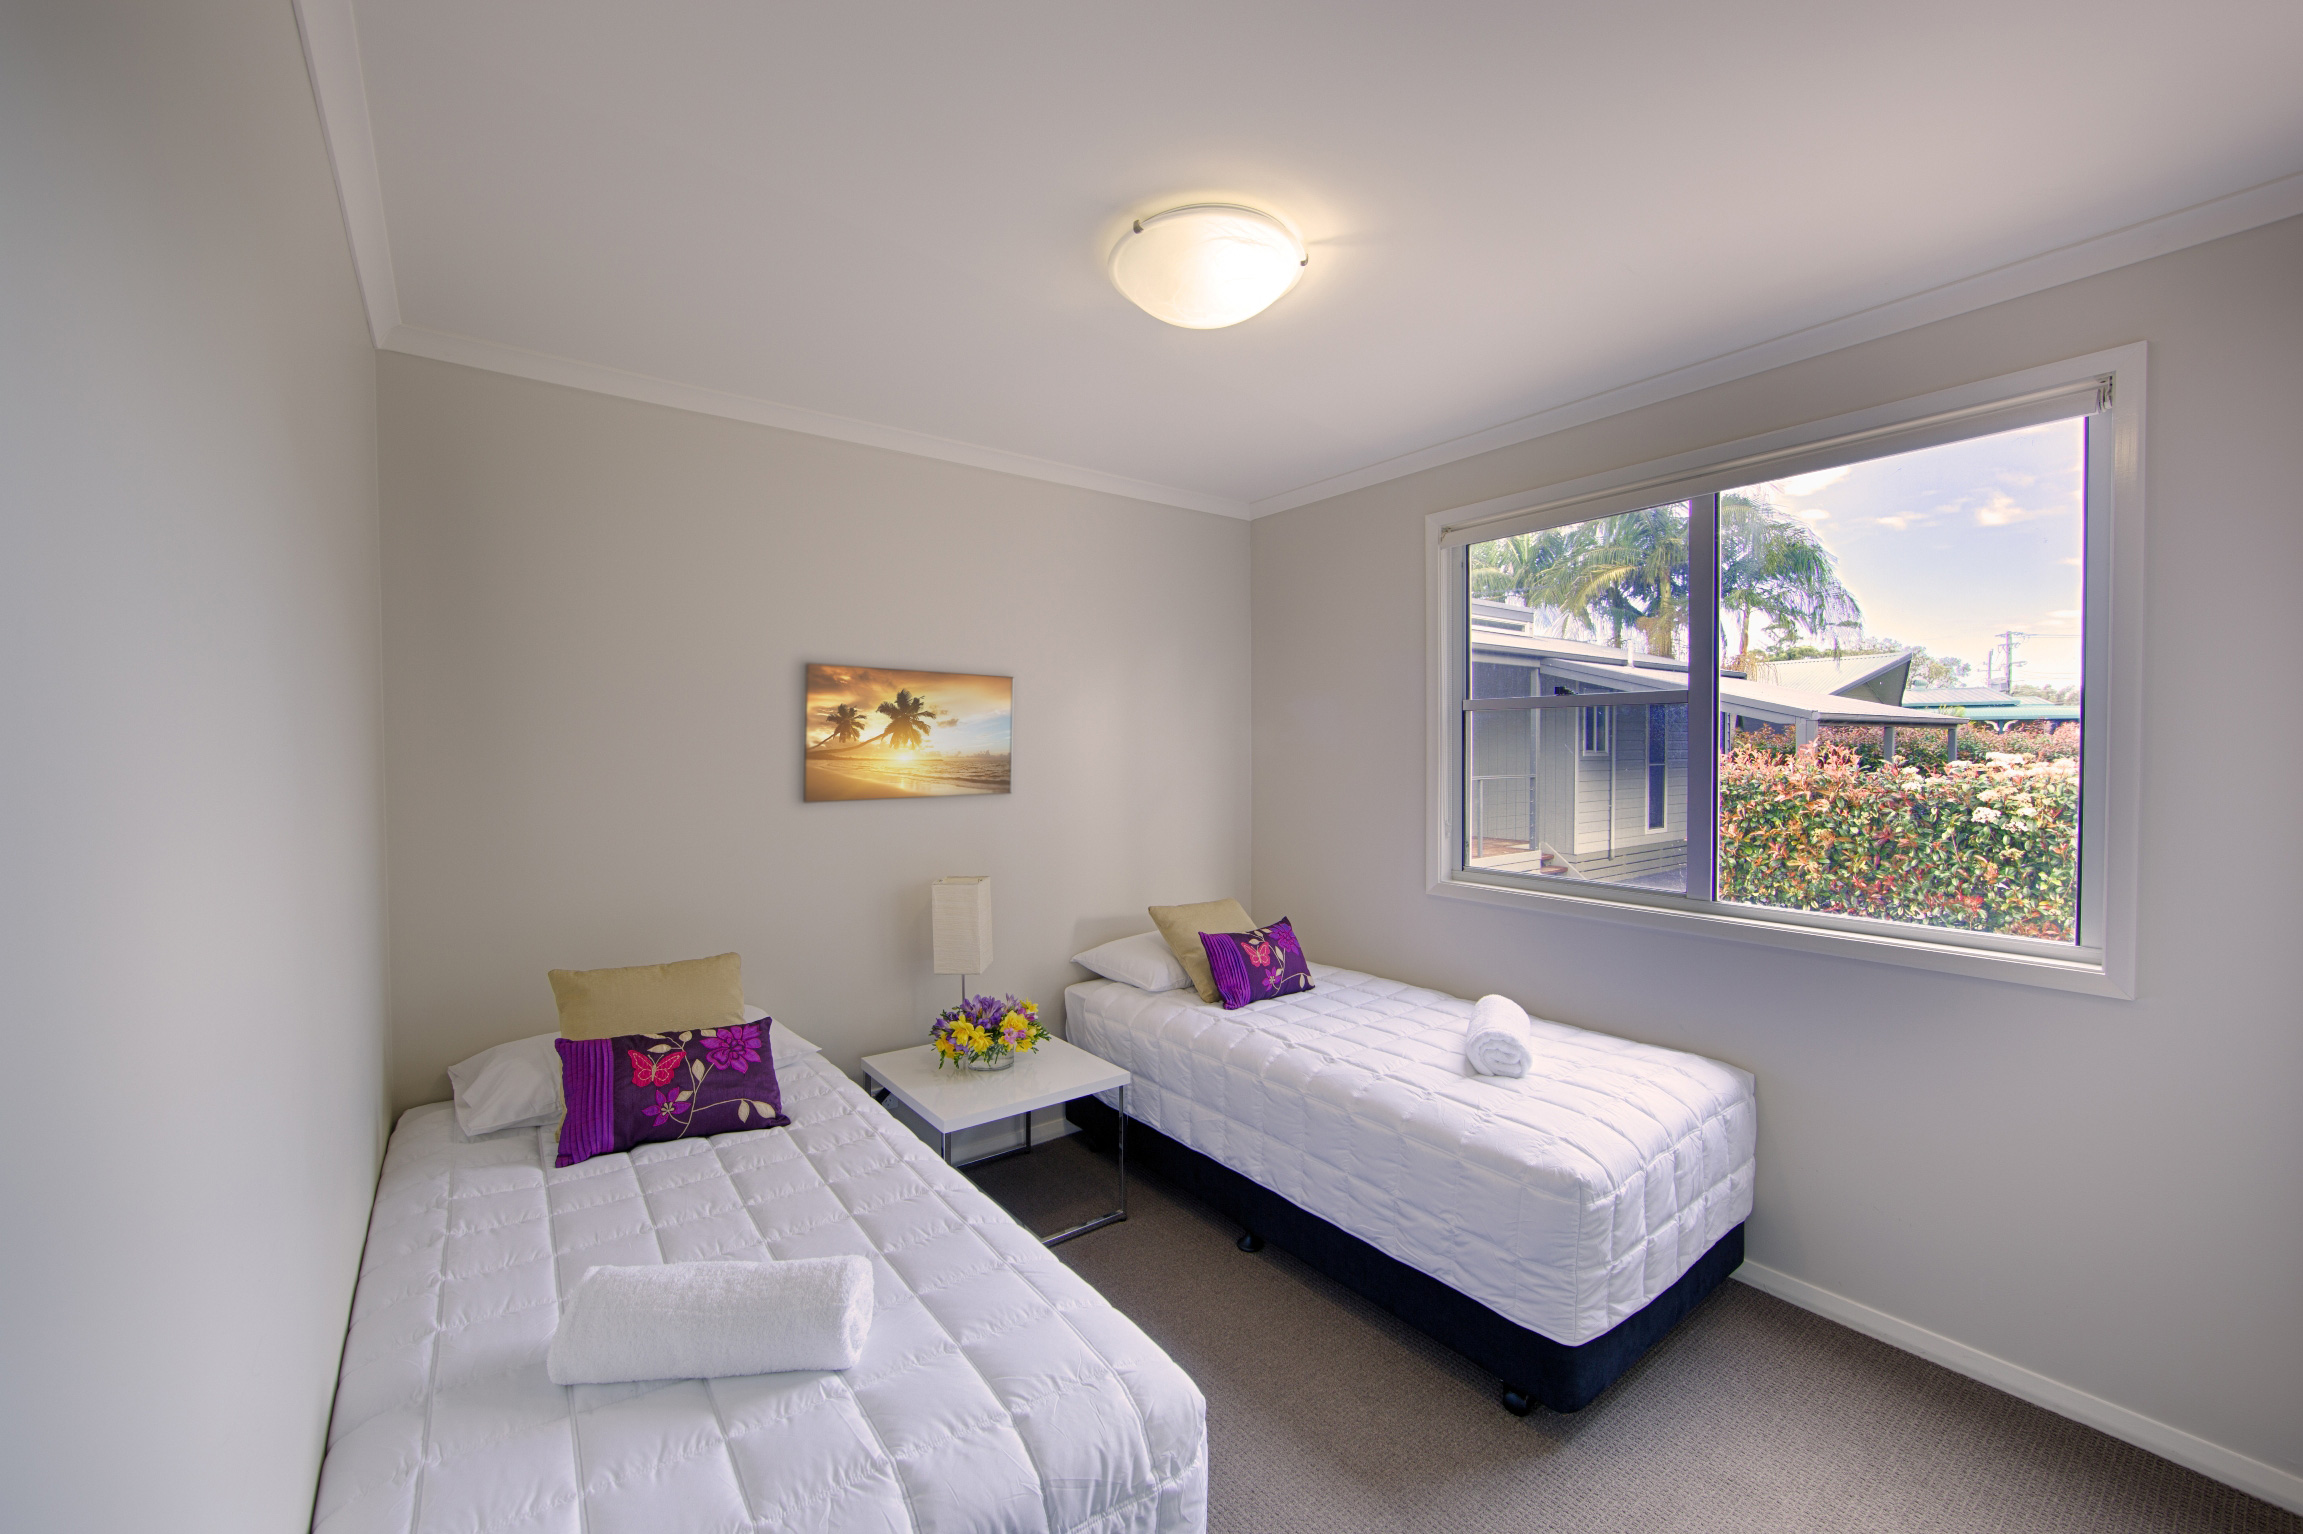 Apartment-Pic-5---2nd-bedroom-with-window.jpg